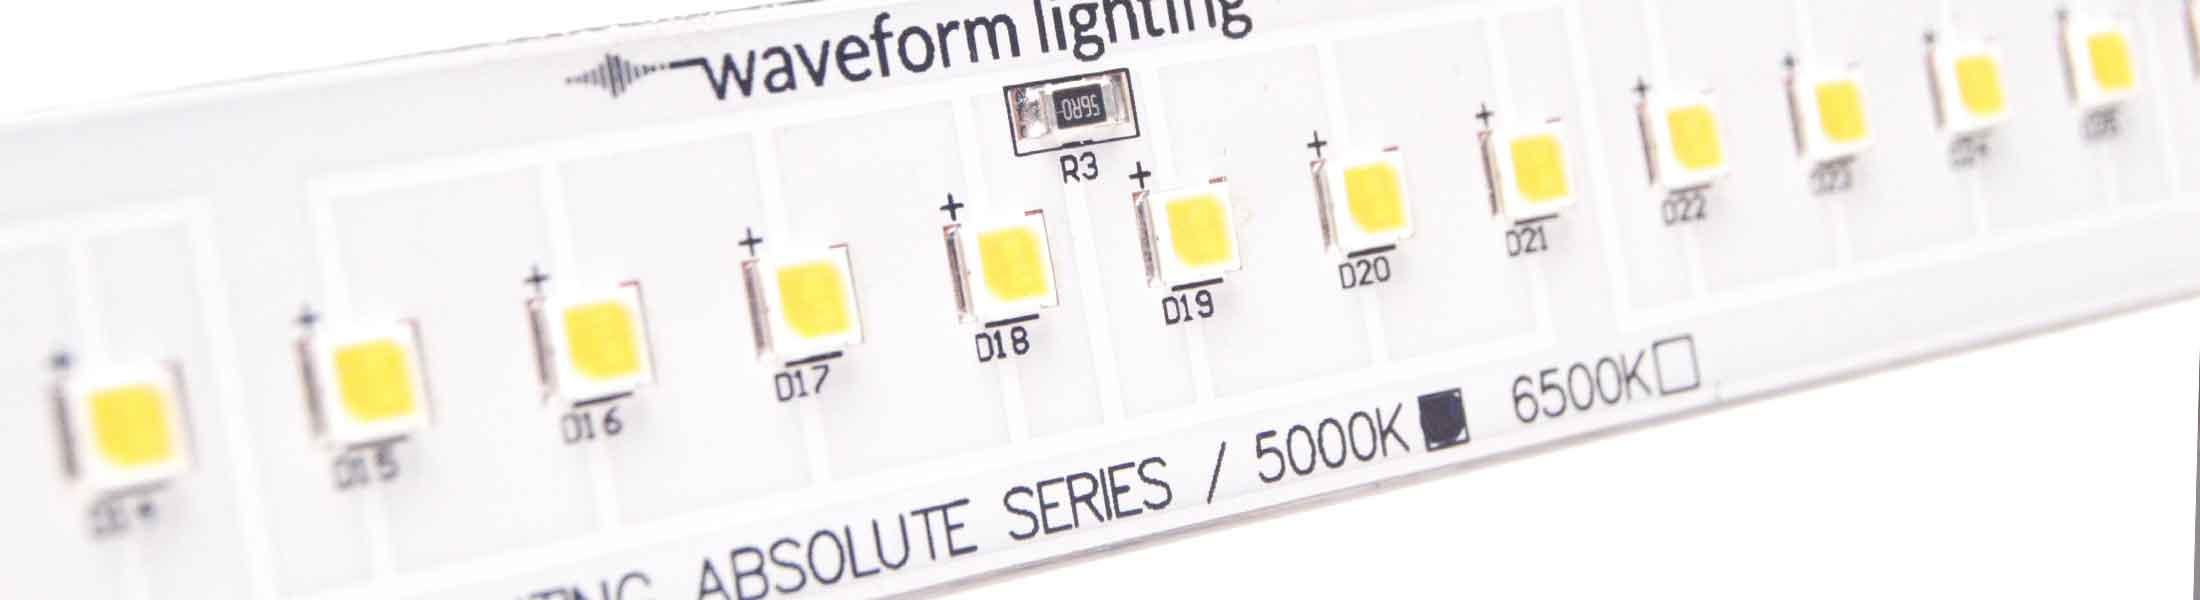 Advantages Of A 24v Led System Vs 12v Waveform Lighting Wiring Leds In Series 2 Requires Less Conductor Gauge